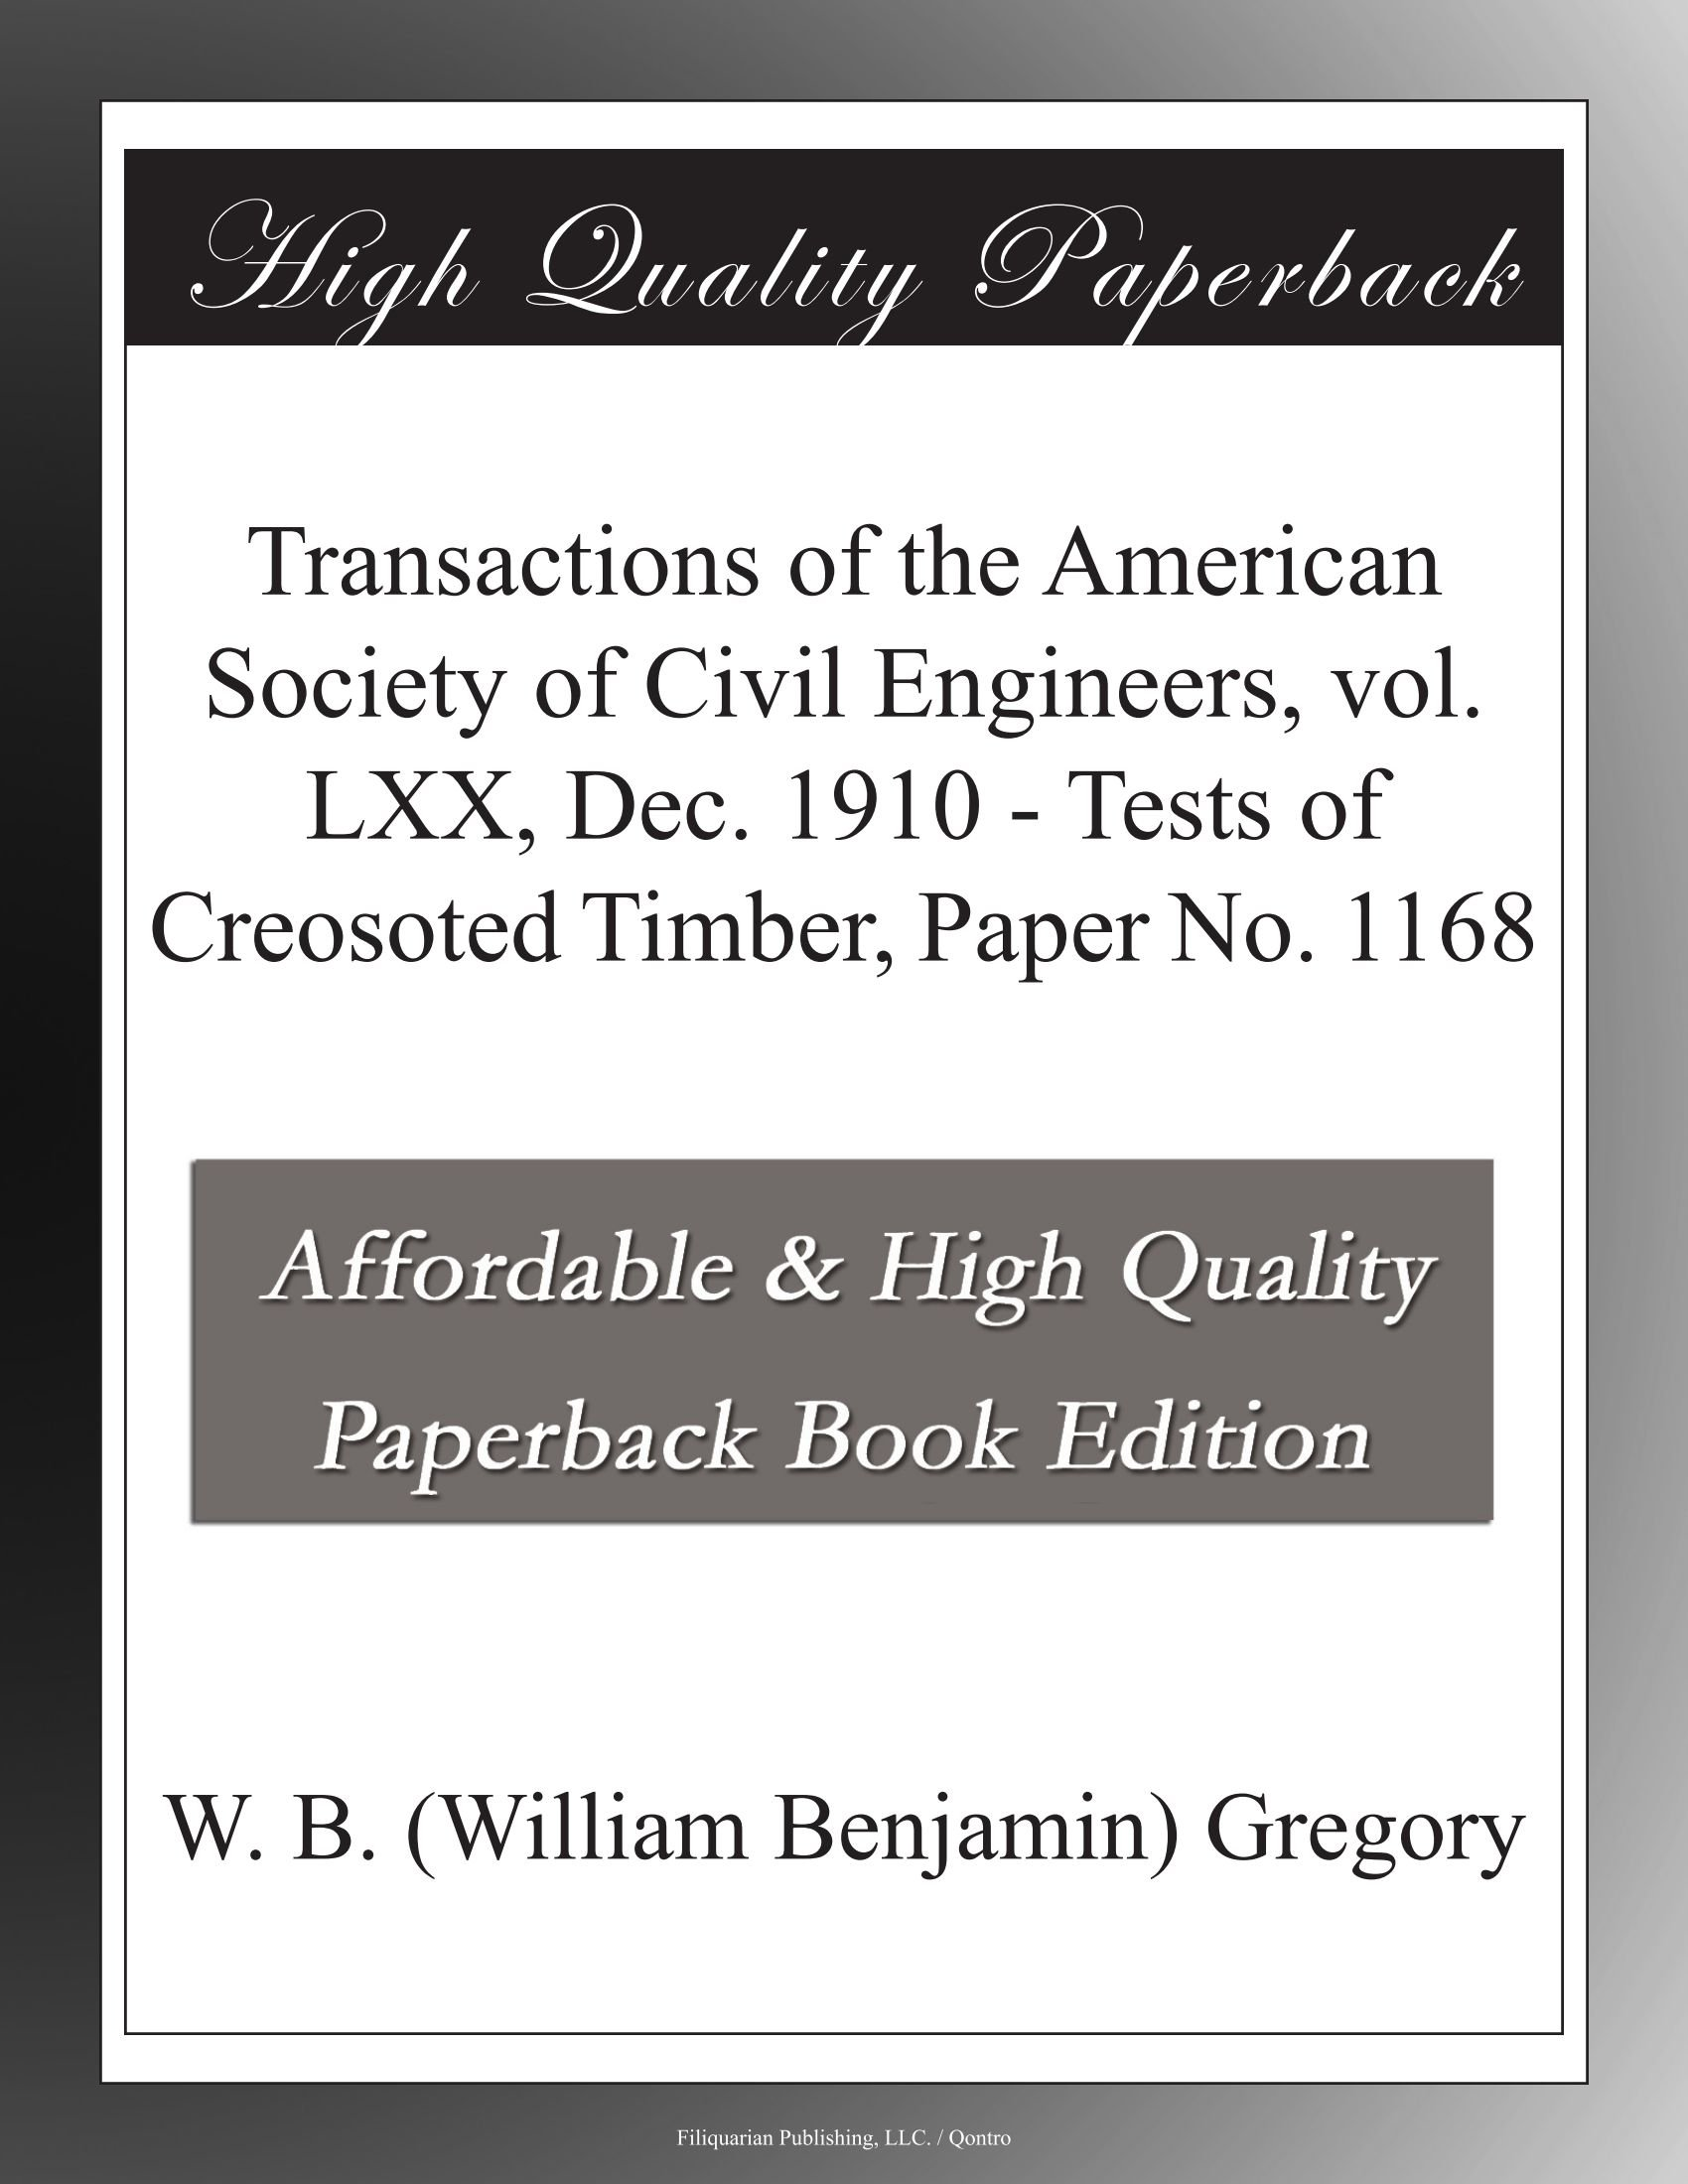 Transactions of the American Society of Civil Engineers, vol. LXX, Dec. 1910 - Tests of Creosoted Timber, Paper No. 1168 pdf